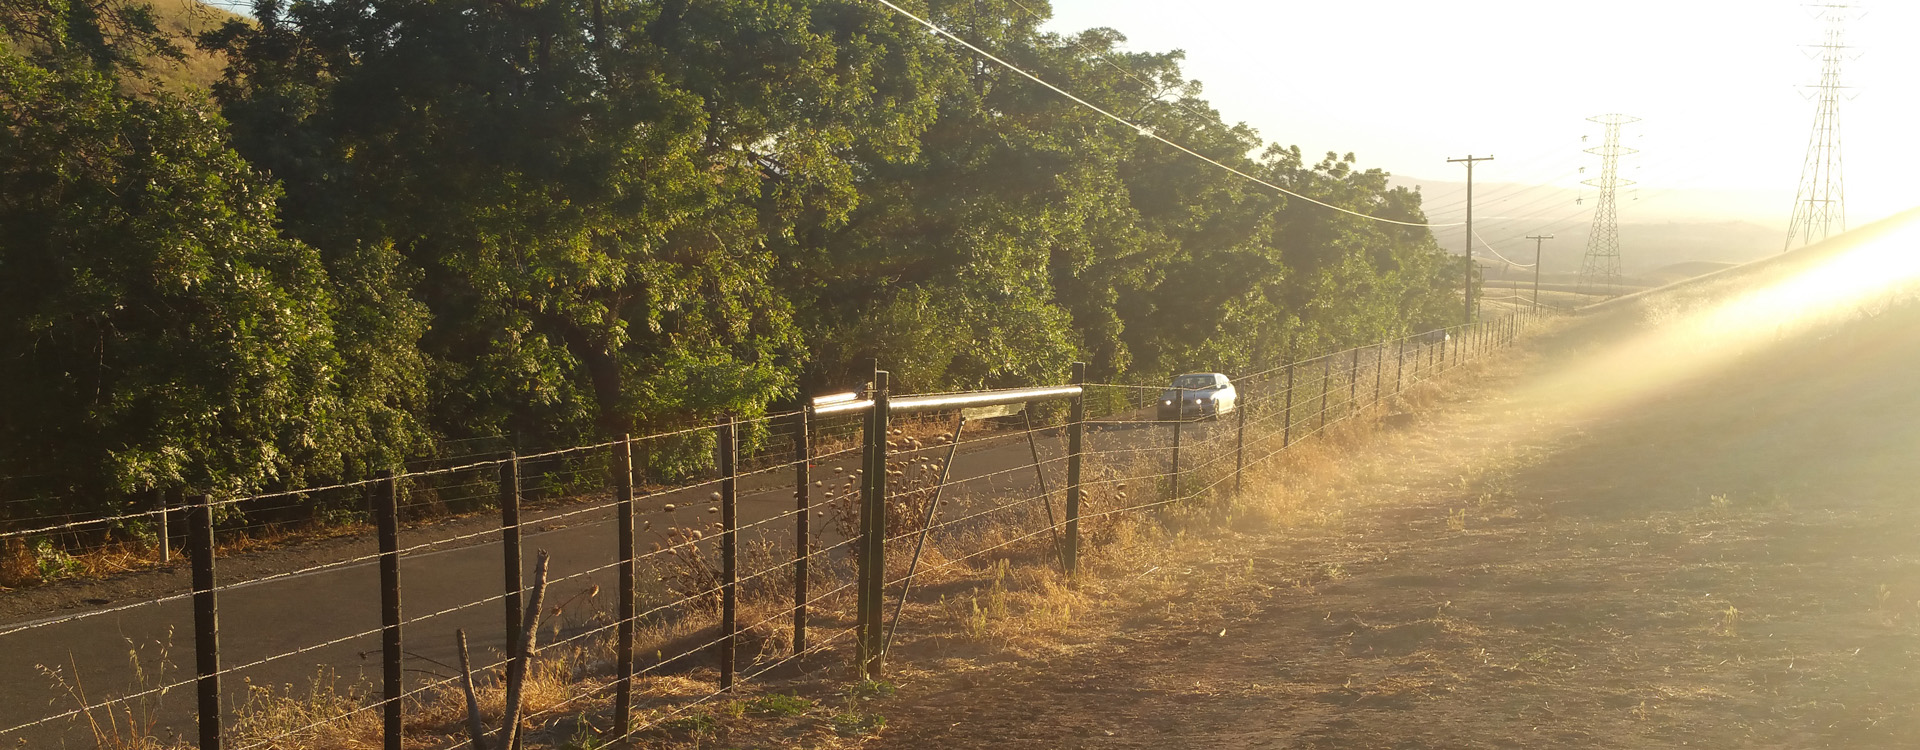 Barb Wire Gate Paso Robles Ranch Fencing Southwest